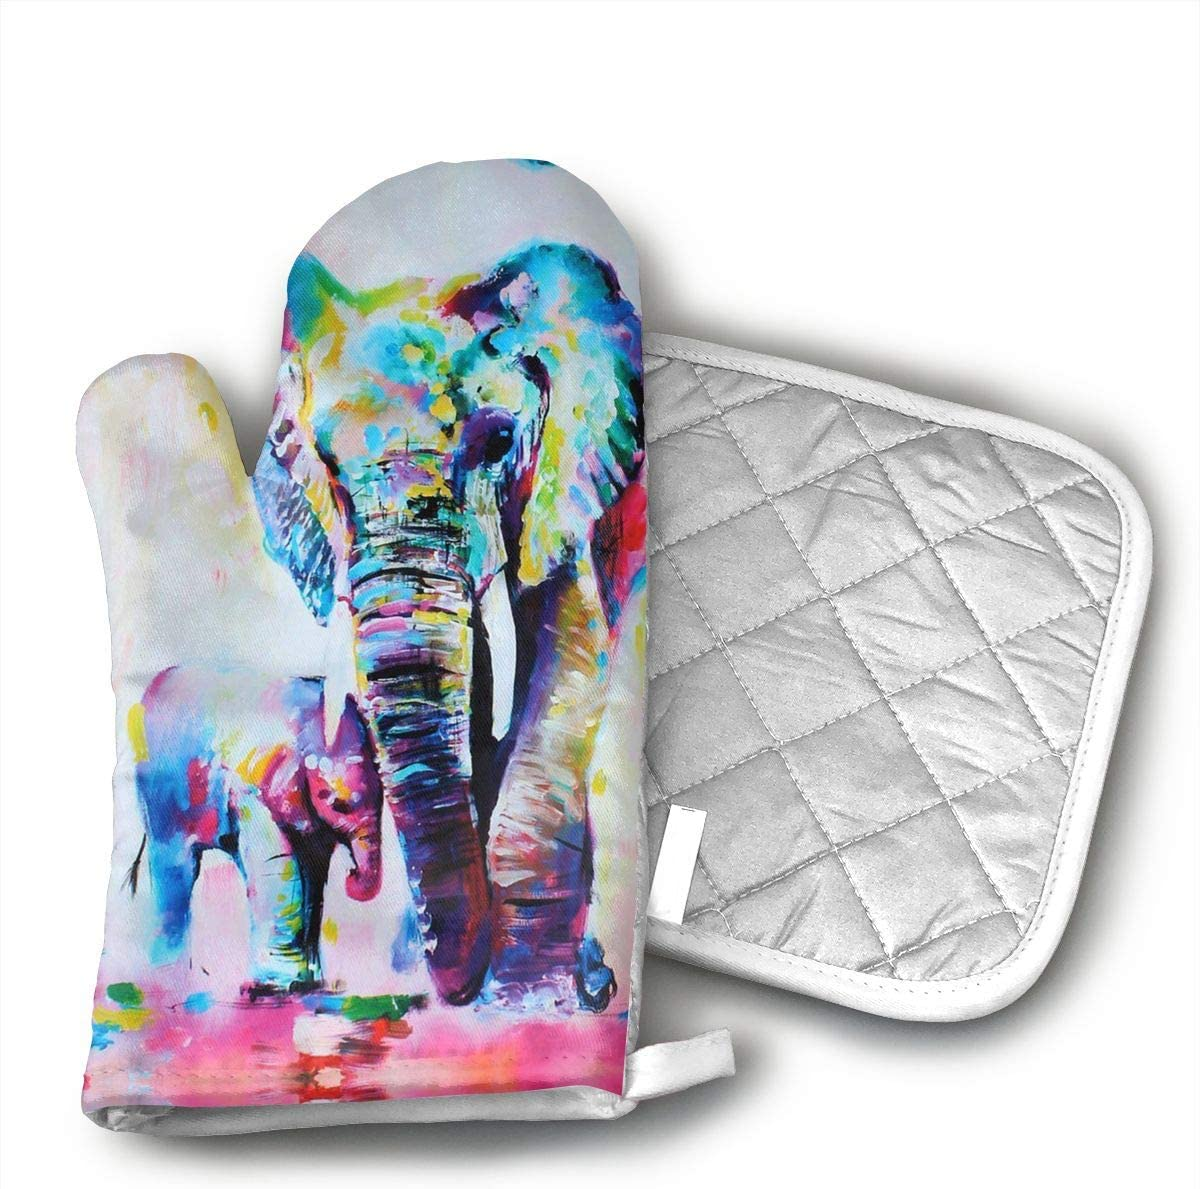 Ubnz17X Elephant Oven Mitts and Pot Holders for Kitchen Set with Cotton Non-Slip Grip,Heat Resistant